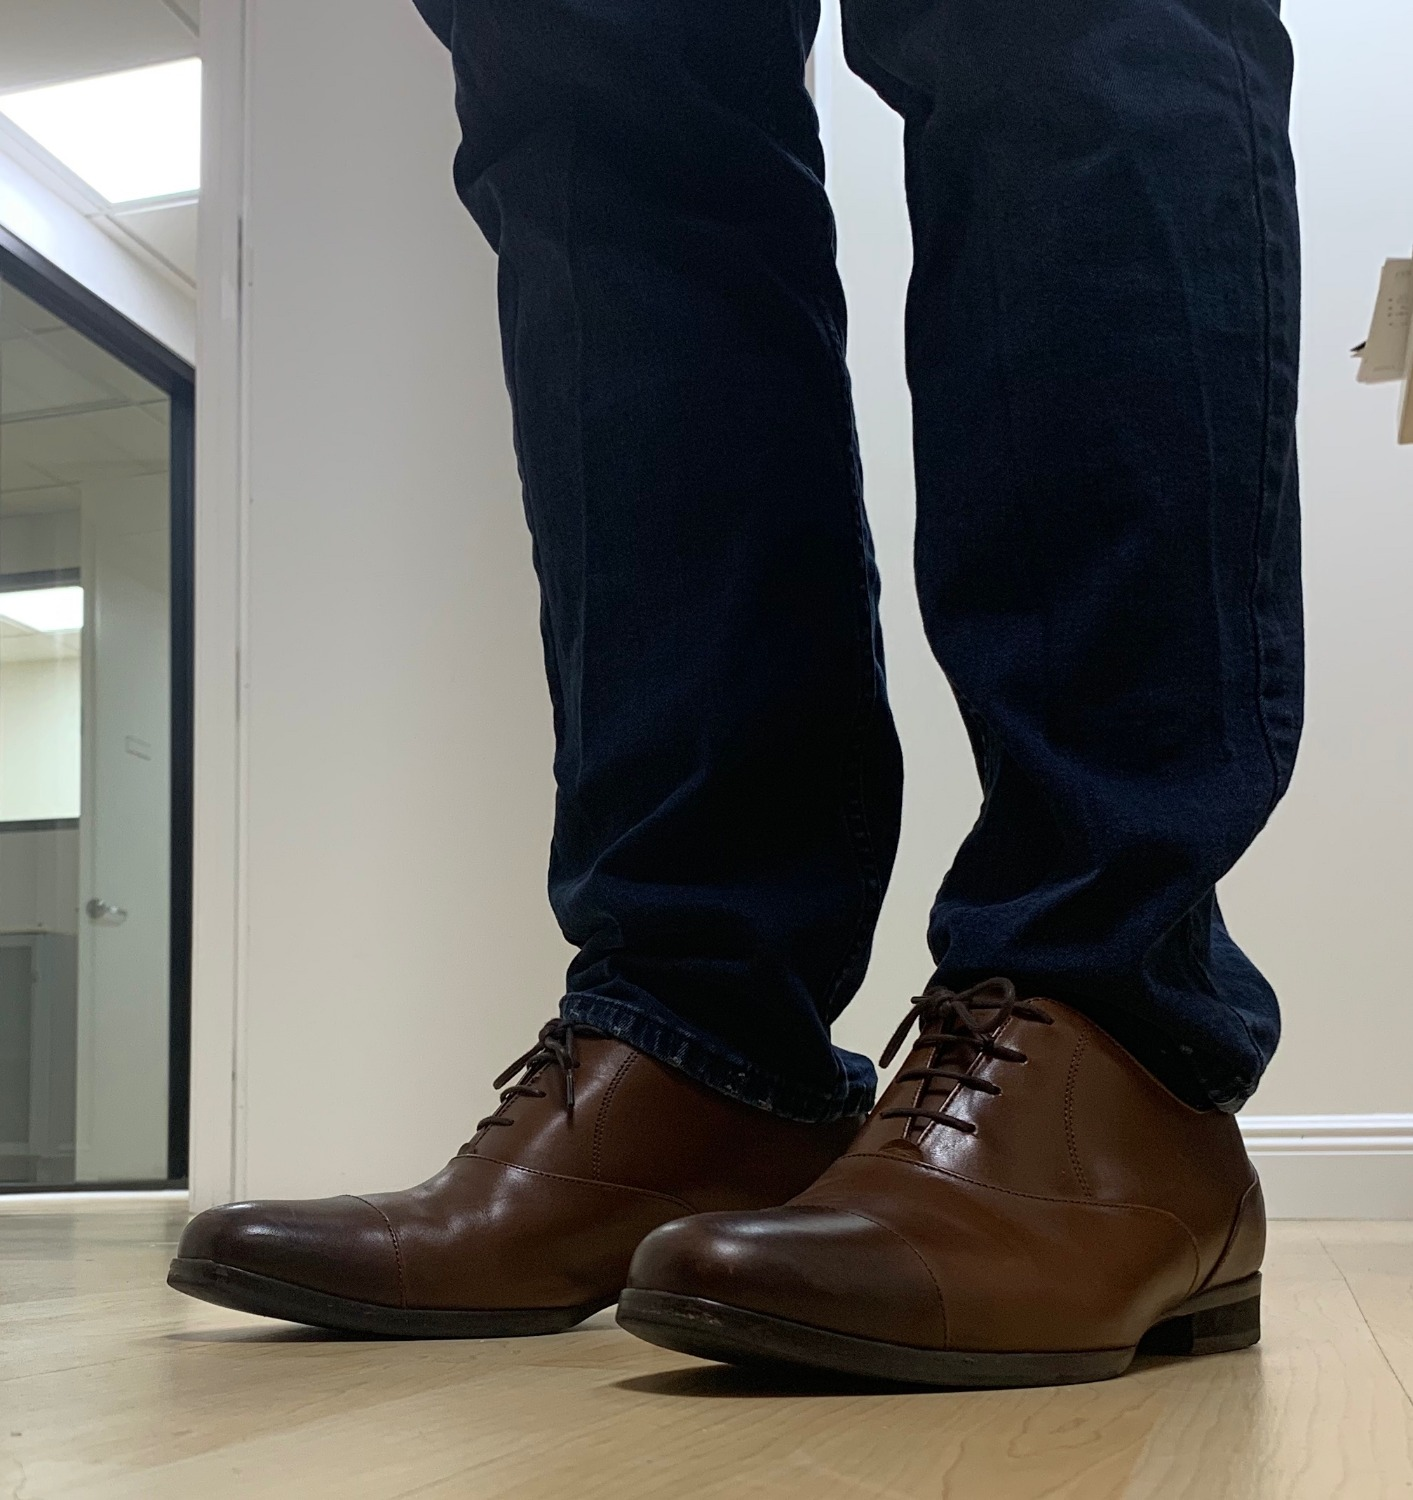 65f1585b3d I bought the Closer Cap Toe in Maple color and after 2 months wearing  these, I have to say that this are my favorite shoes to wear to work.